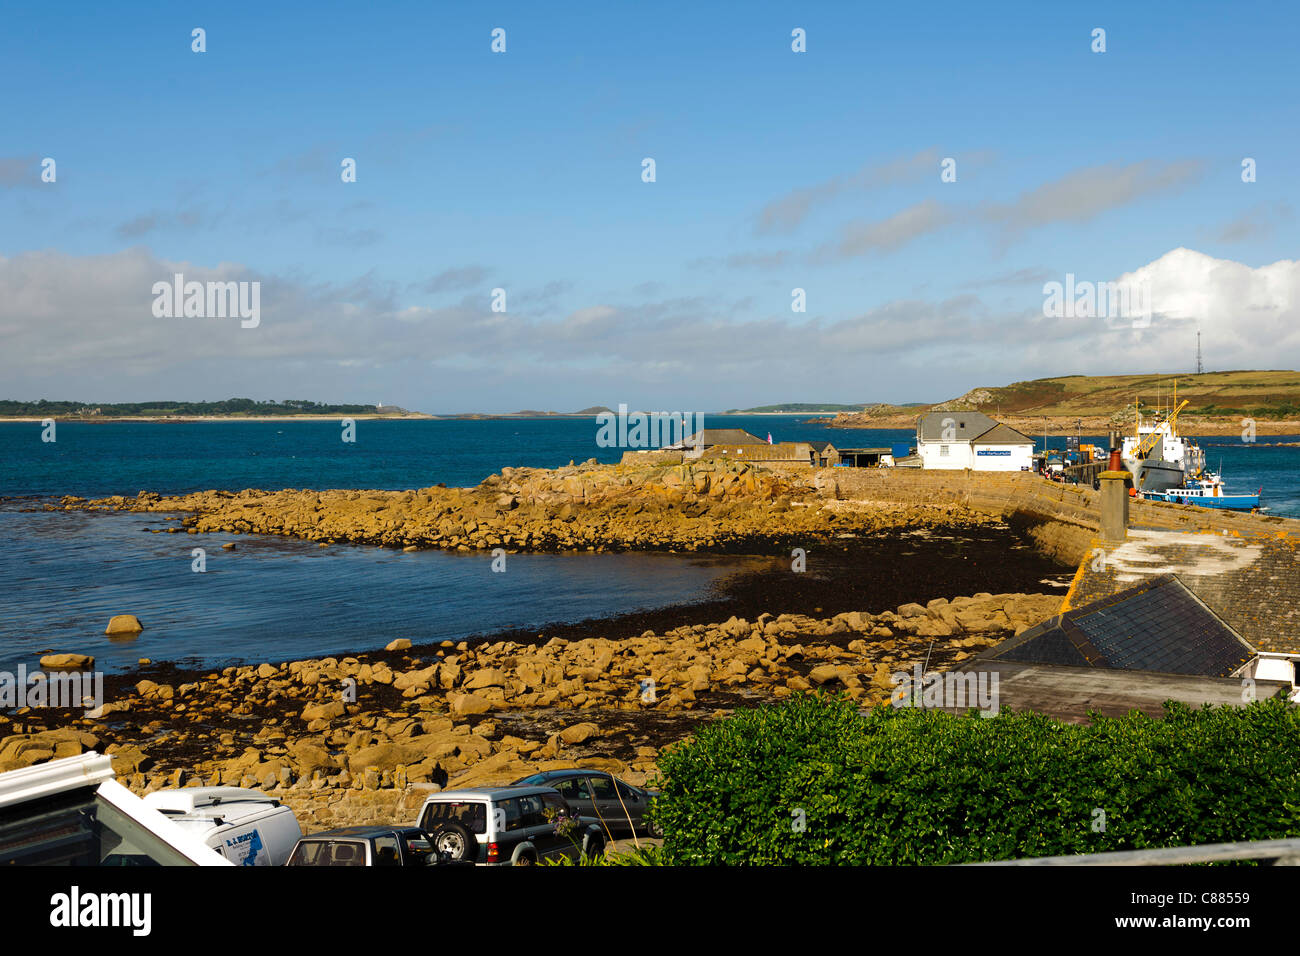 Rat Island Hugh Town St Mary's Isles of Scilly UK - Stock Image